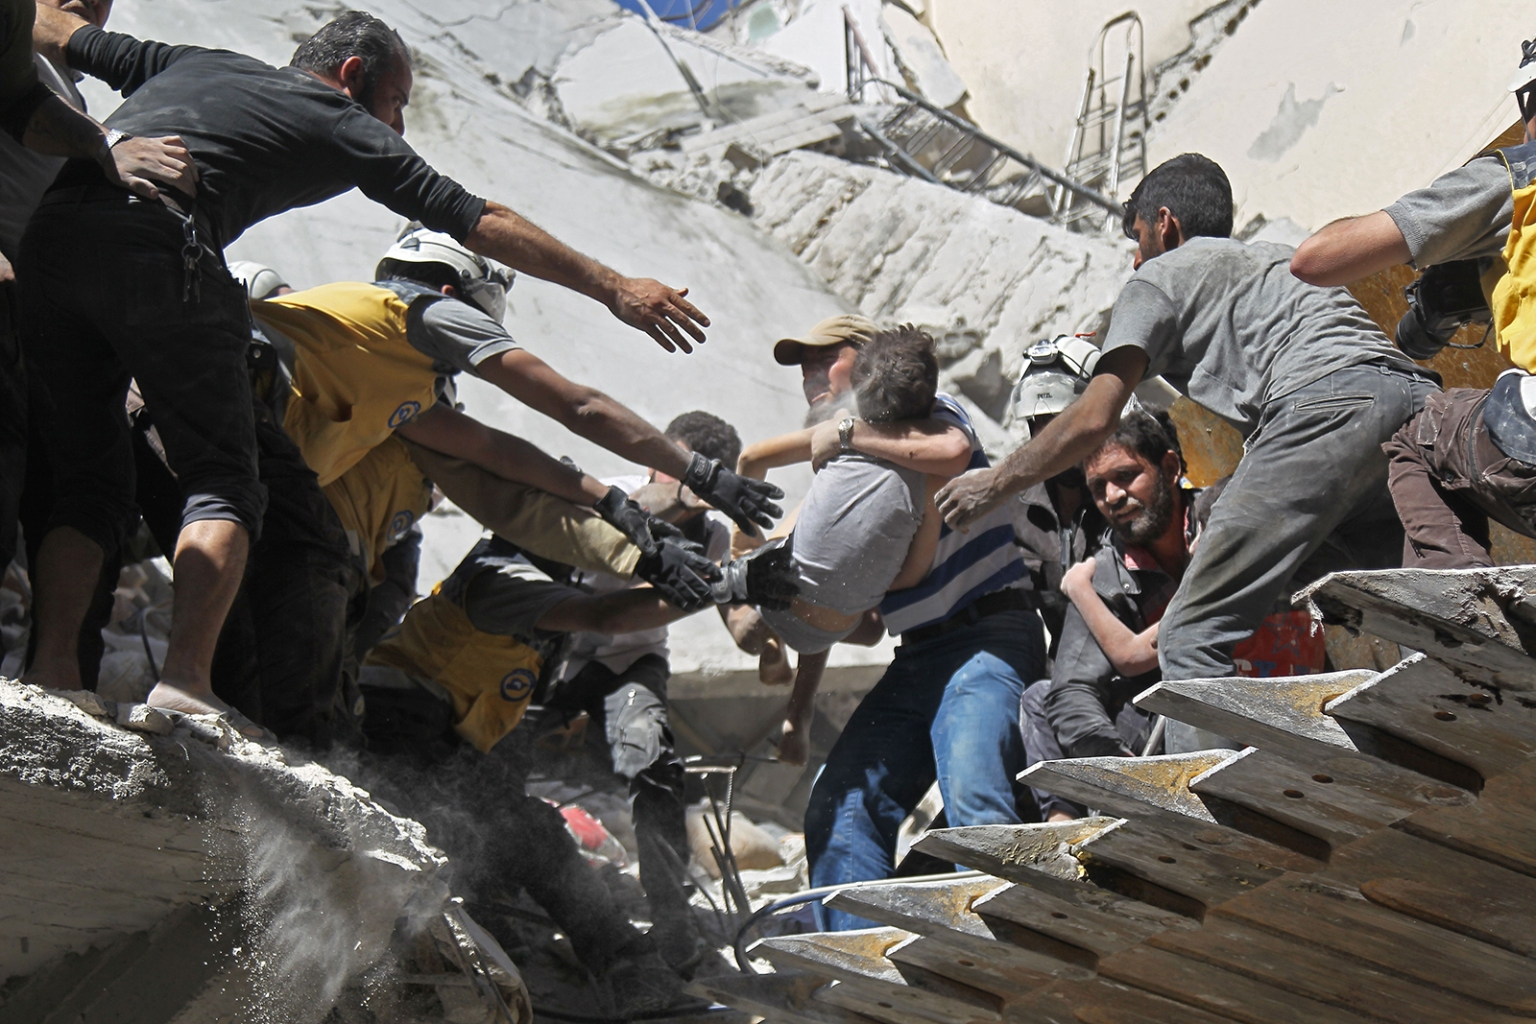 White Helmet volunteers and civilians rescue a child from the rubble of a building destroyed during an airstrike by Syrian regime forces and their allies on the town of Ariha, in the southern outskirts of Syria's Idlib province, on May 27. AMER ALHAMWE/AFP/Getty Images